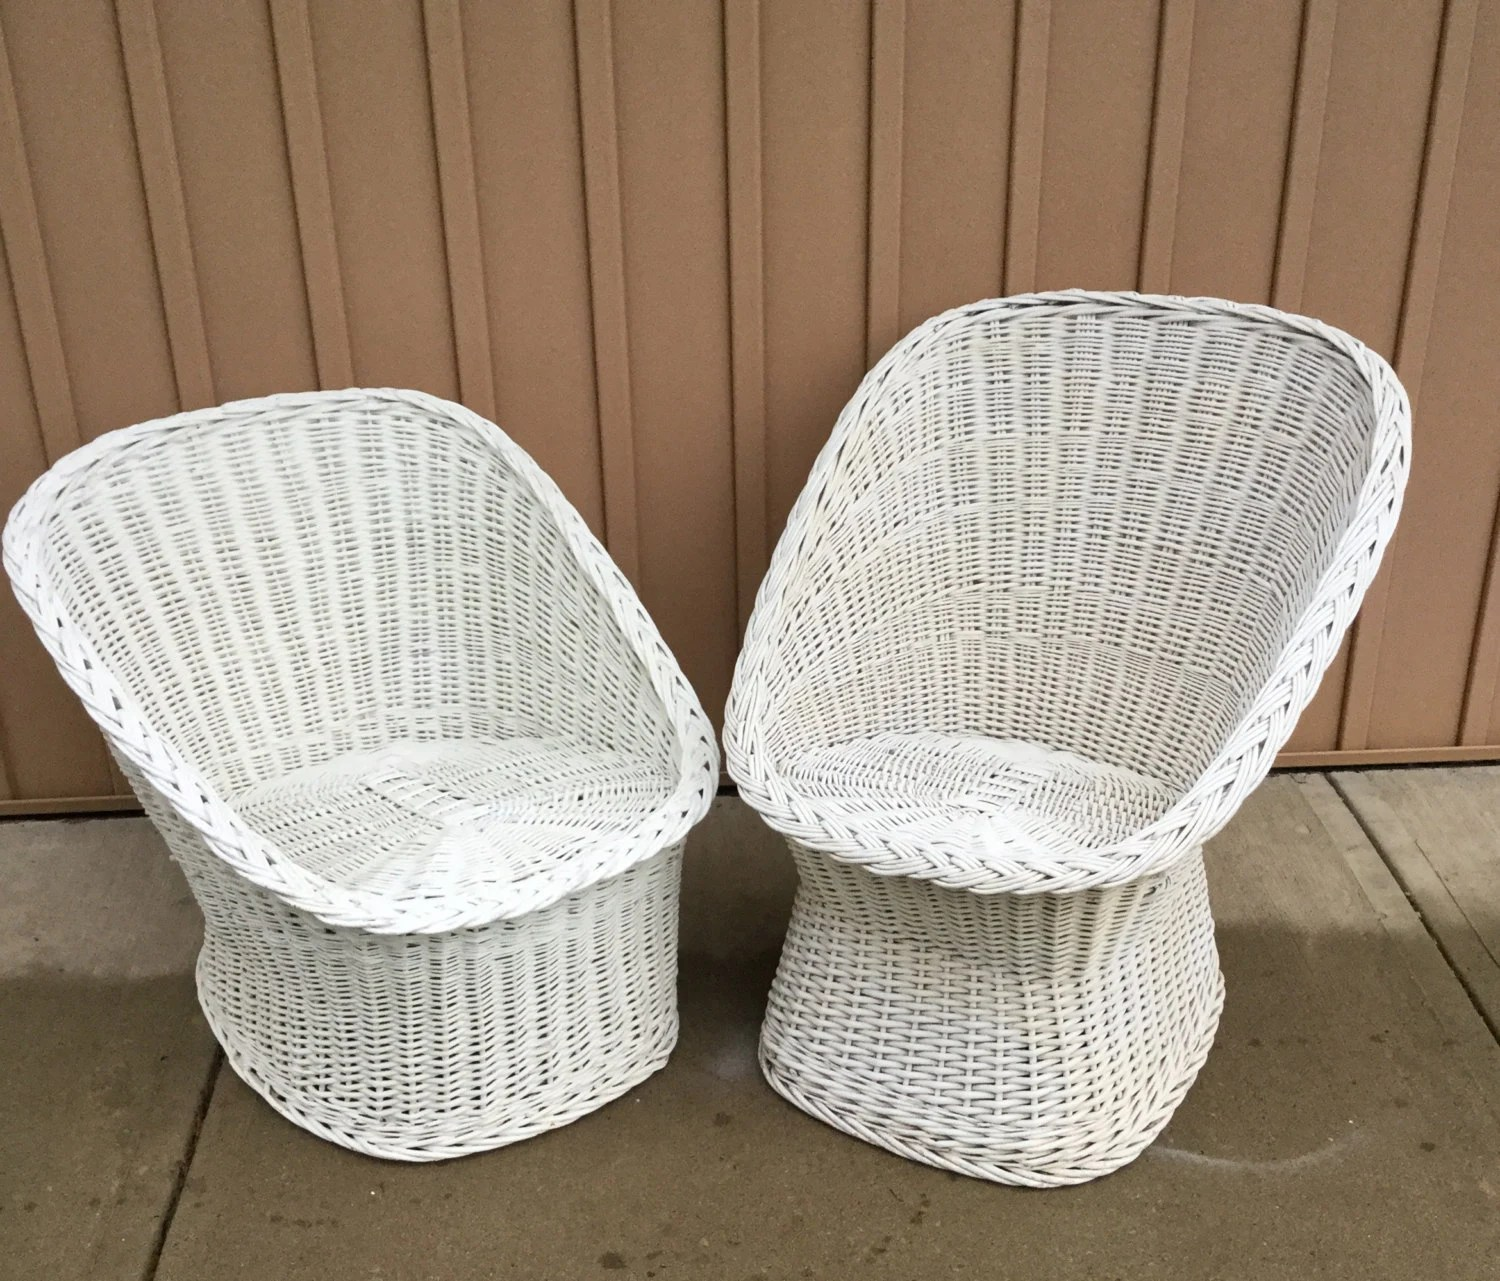 Egg Basket Chair His And Hrs Vintage Wicker Egg Chairs Pair